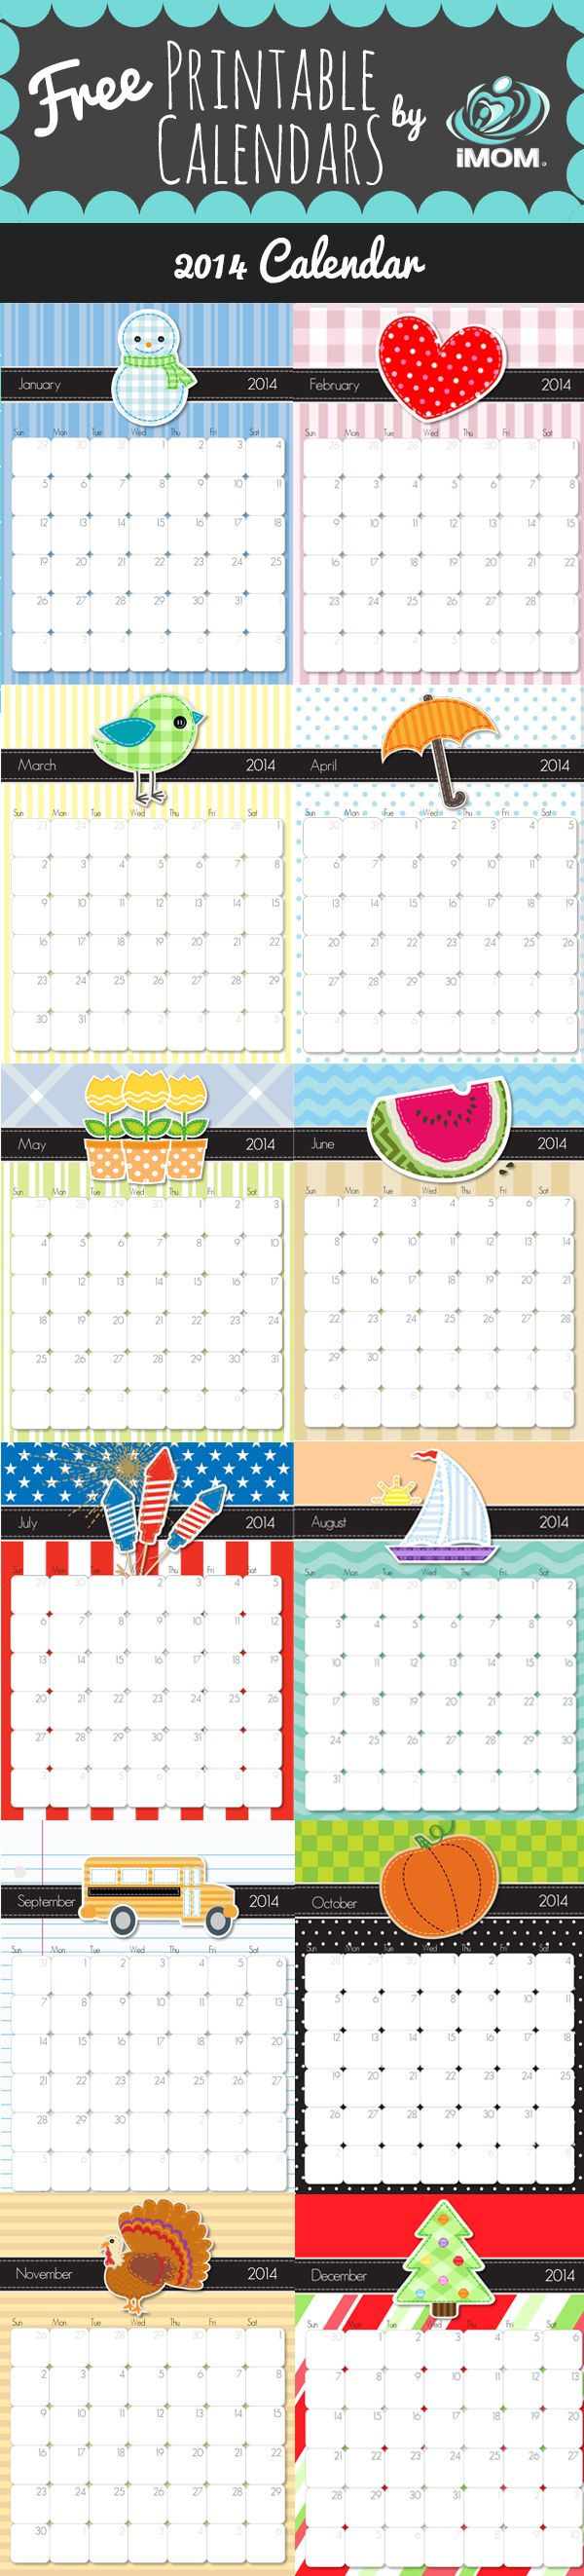 Start planning for next year with these free 2014 printable calendars! #printable #printablecalendars